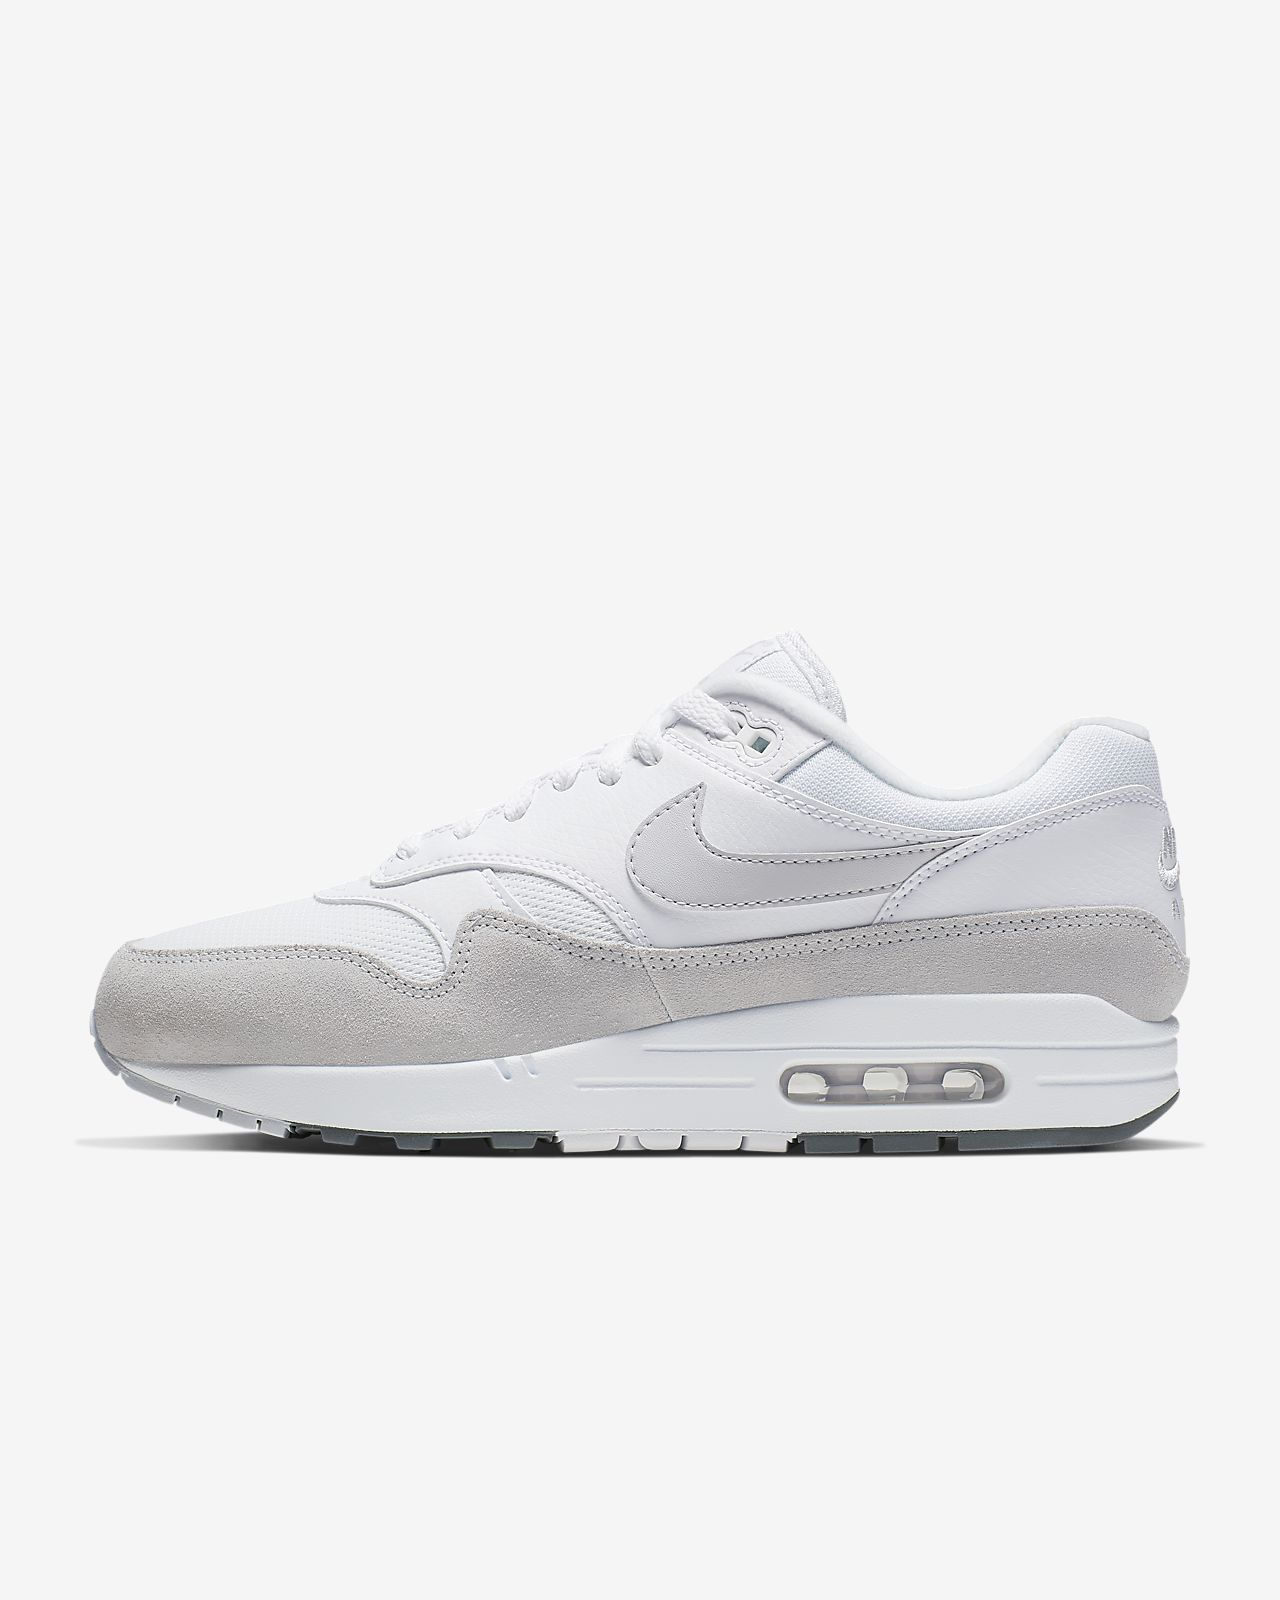 7715ab5fbb6c7 Nike Air Max 1 Men's Shoe. Nike.com SE